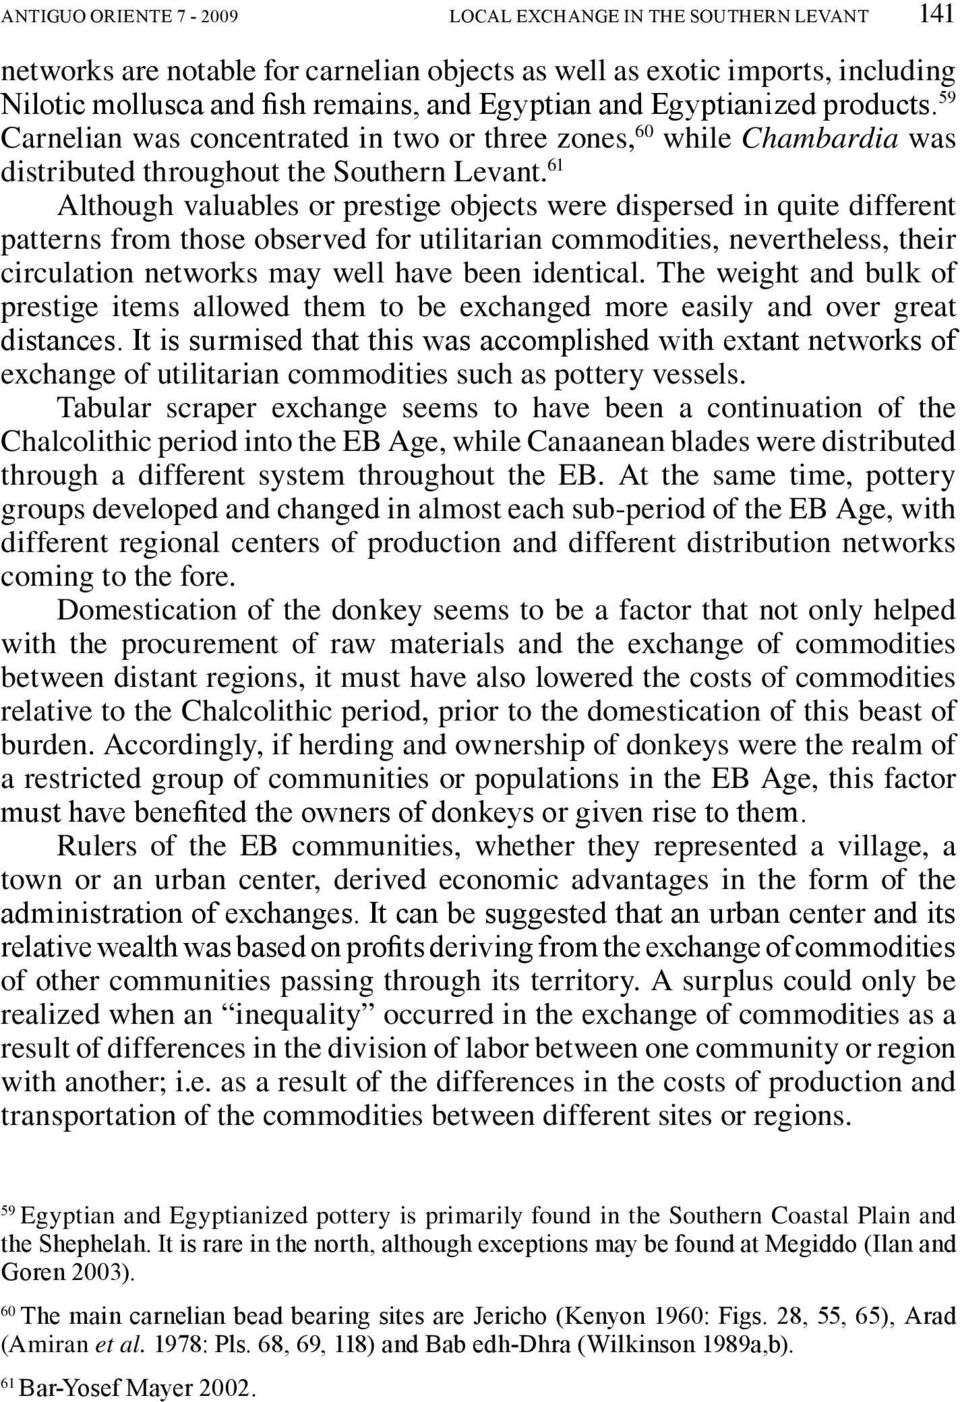 61 Although valuables or prestige objects were dispersed in quite different patterns from those observed for utilitarian commodities, nevertheless, their circulation networks may well have been